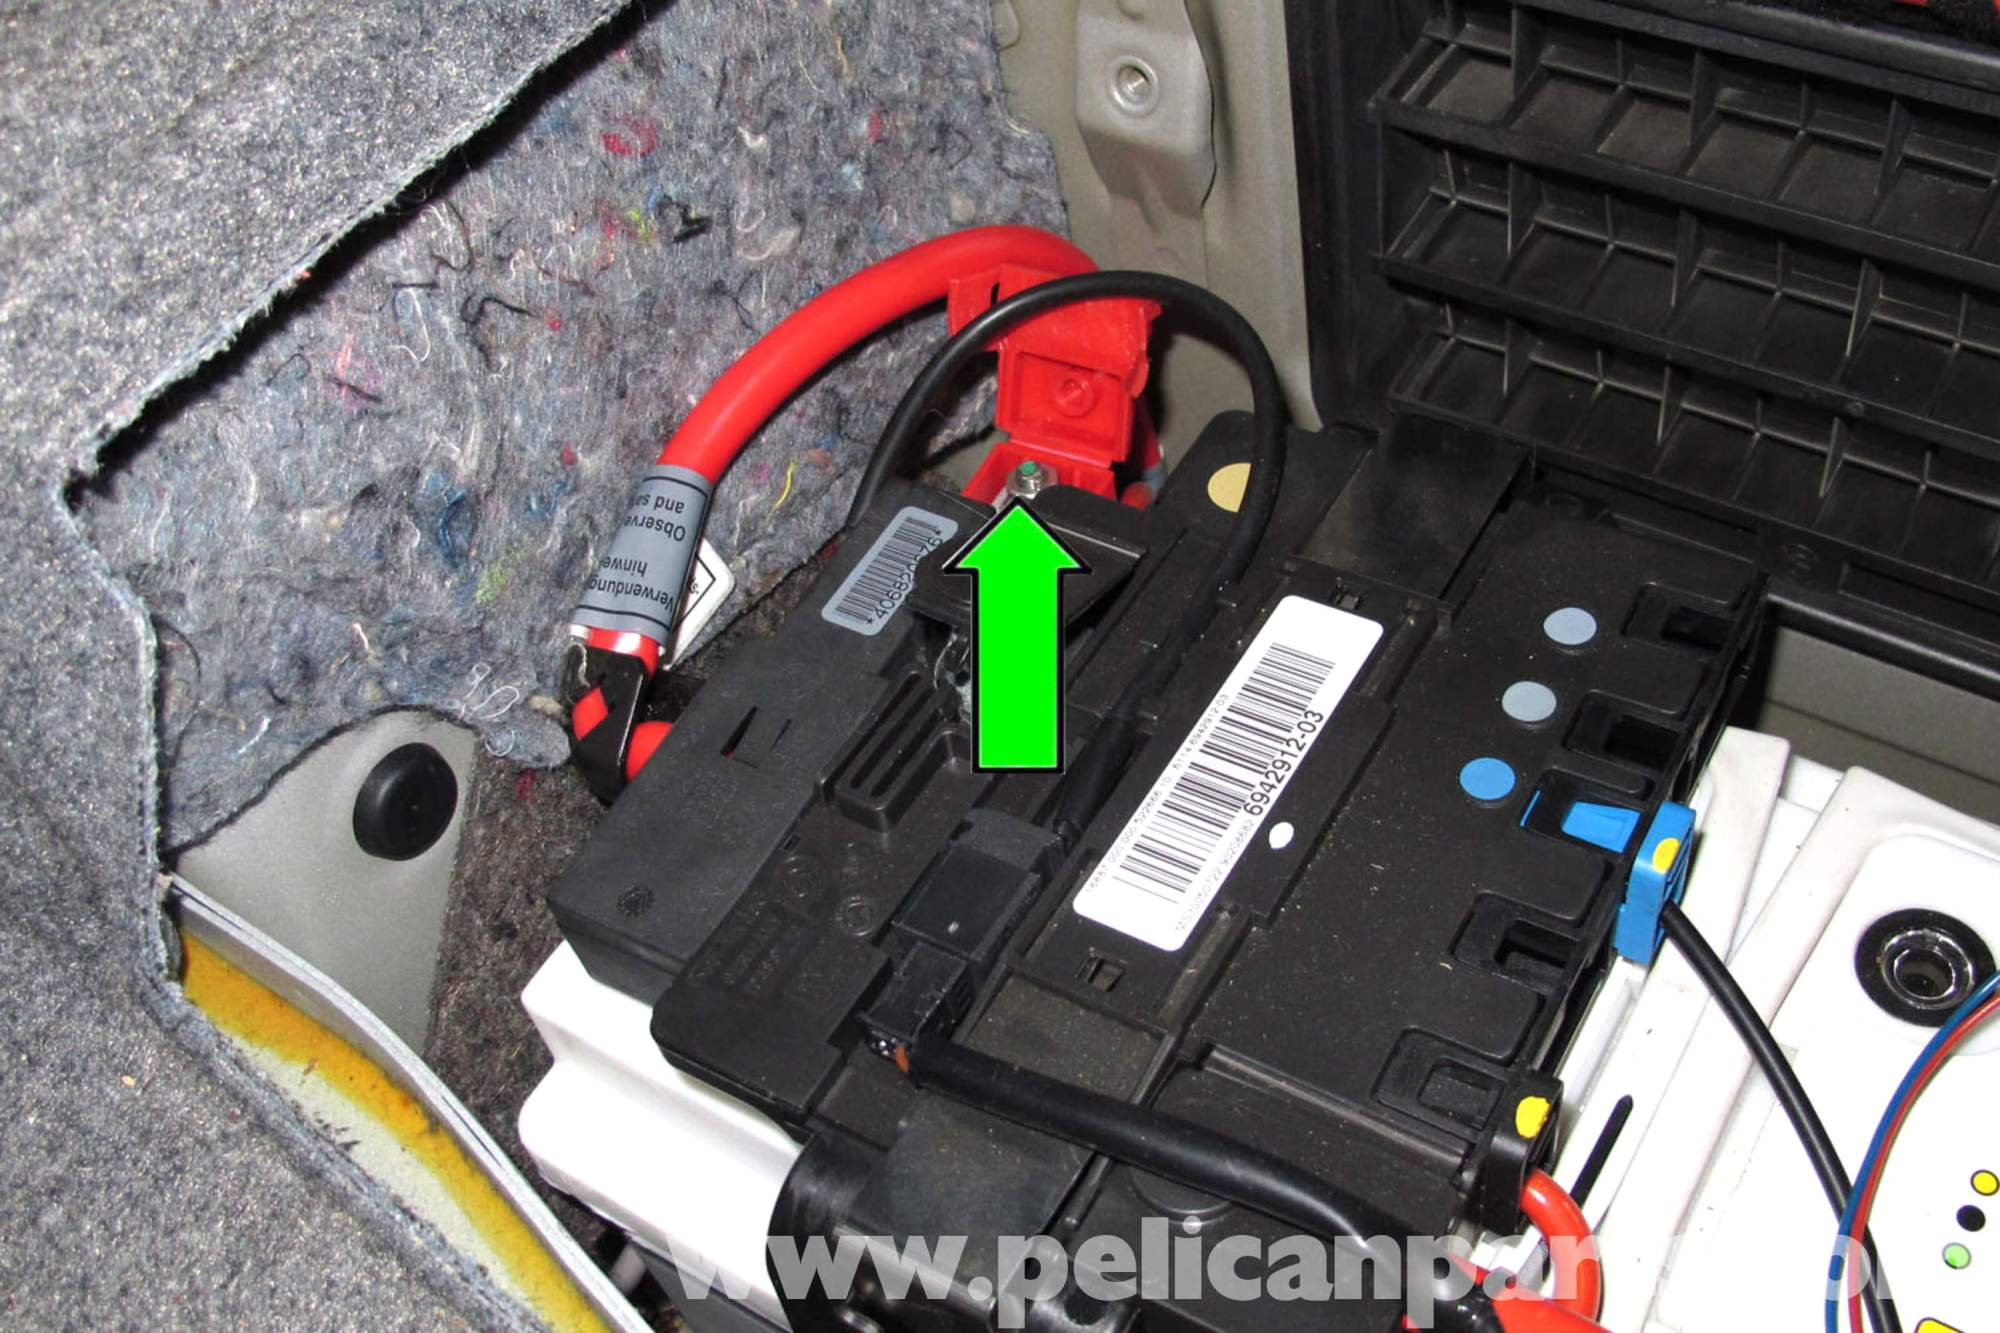 hight resolution of 2007 bmw 325i fuse box diagram 2007 free engine image bmw 328i fuse box location 2006